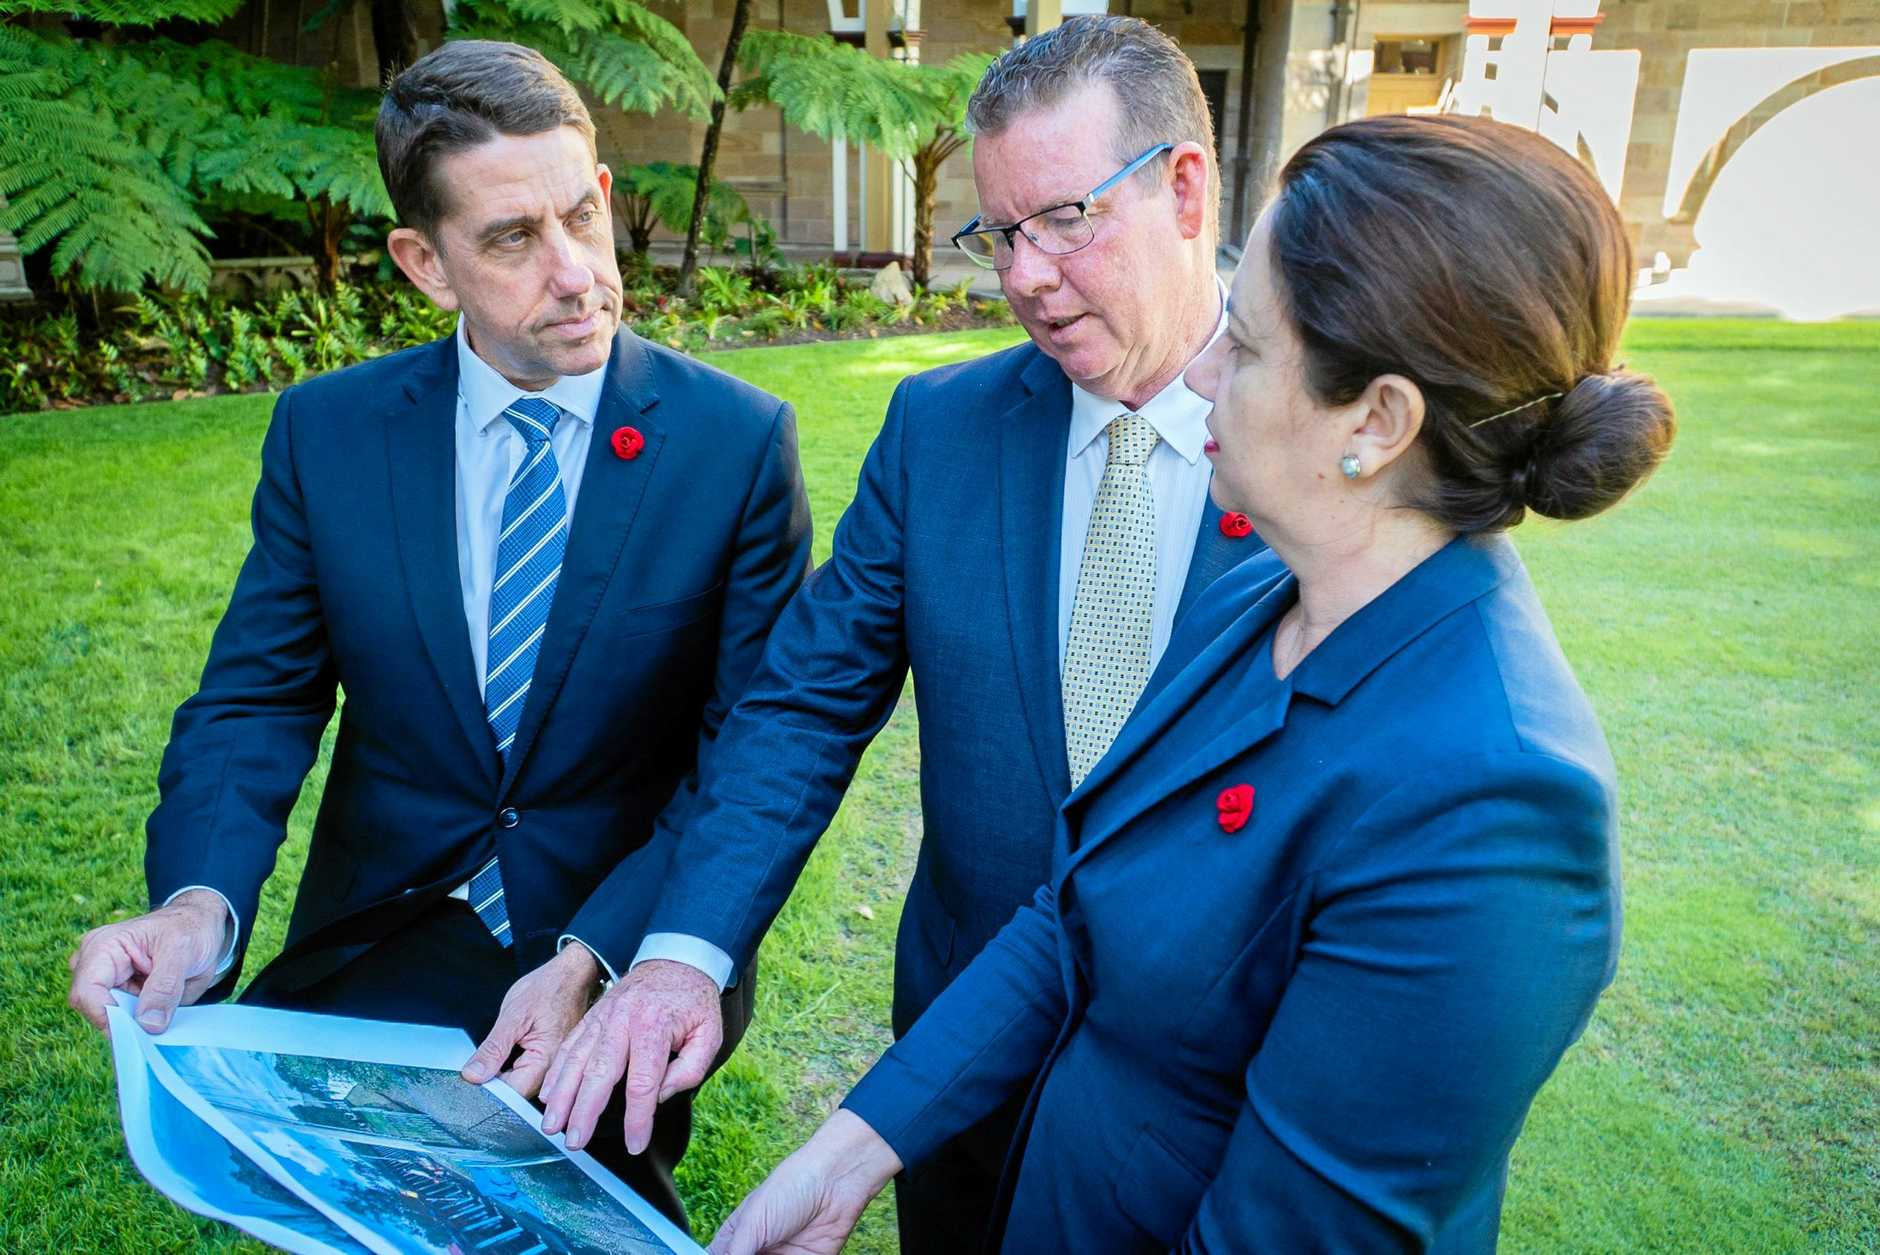 LEVEE READY: The Queensland Government's Minister Cameron Dick (left), Rockhampton Barry O'Rourke and Premier Annastacia Palaszczuk are ready to fast track the process of constructing the South Rockhampton flood levee.